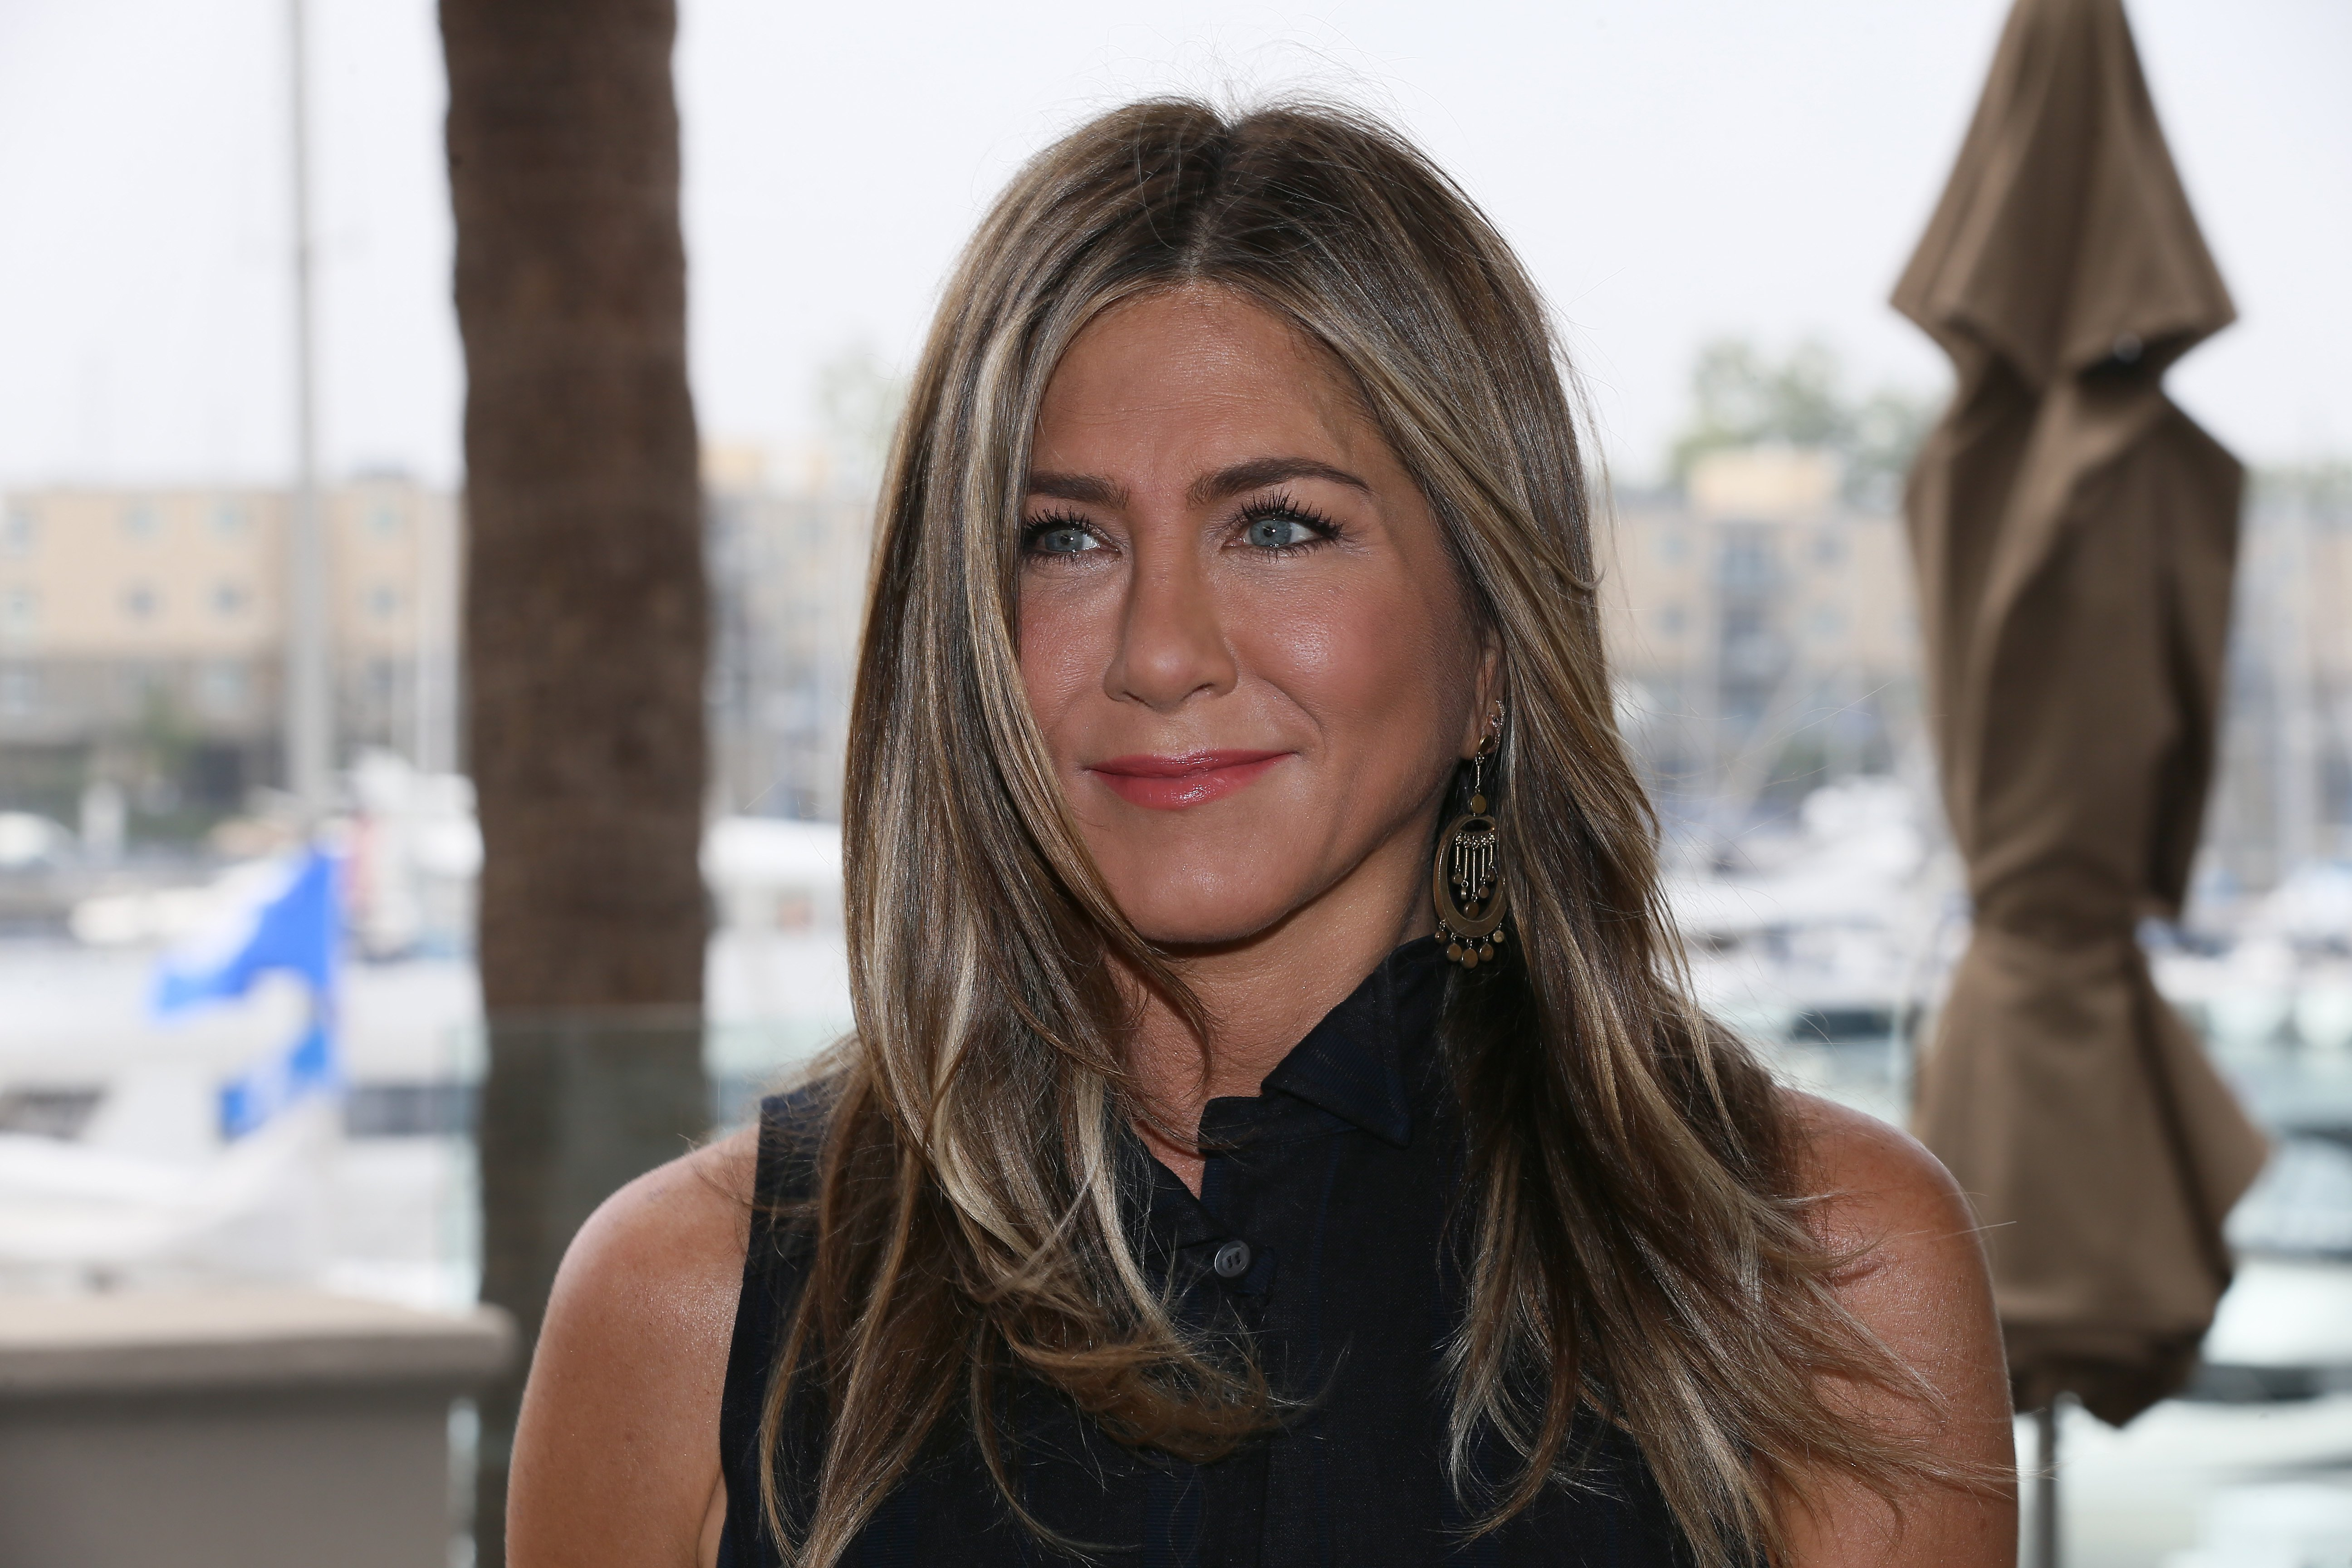 """Jennifer Aniston attends a photocall for """"Murder Mystery"""" in Marina del Rey, California on June 11, 2019 